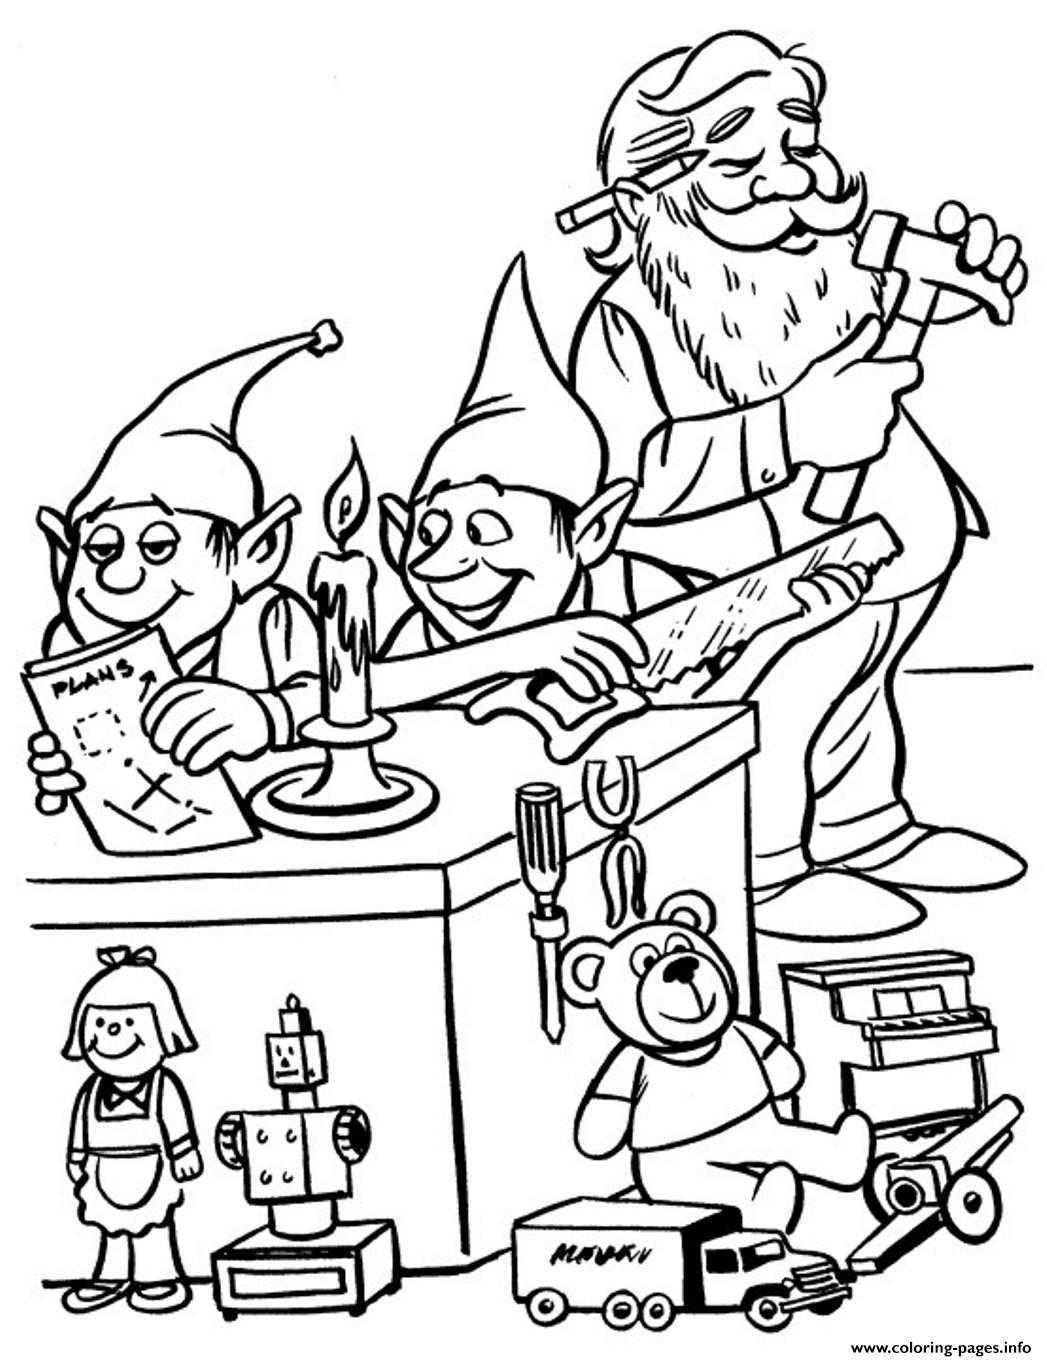 Santa S Elf Coloring Pages With Elves And Christmas For Kids4a74 Printable